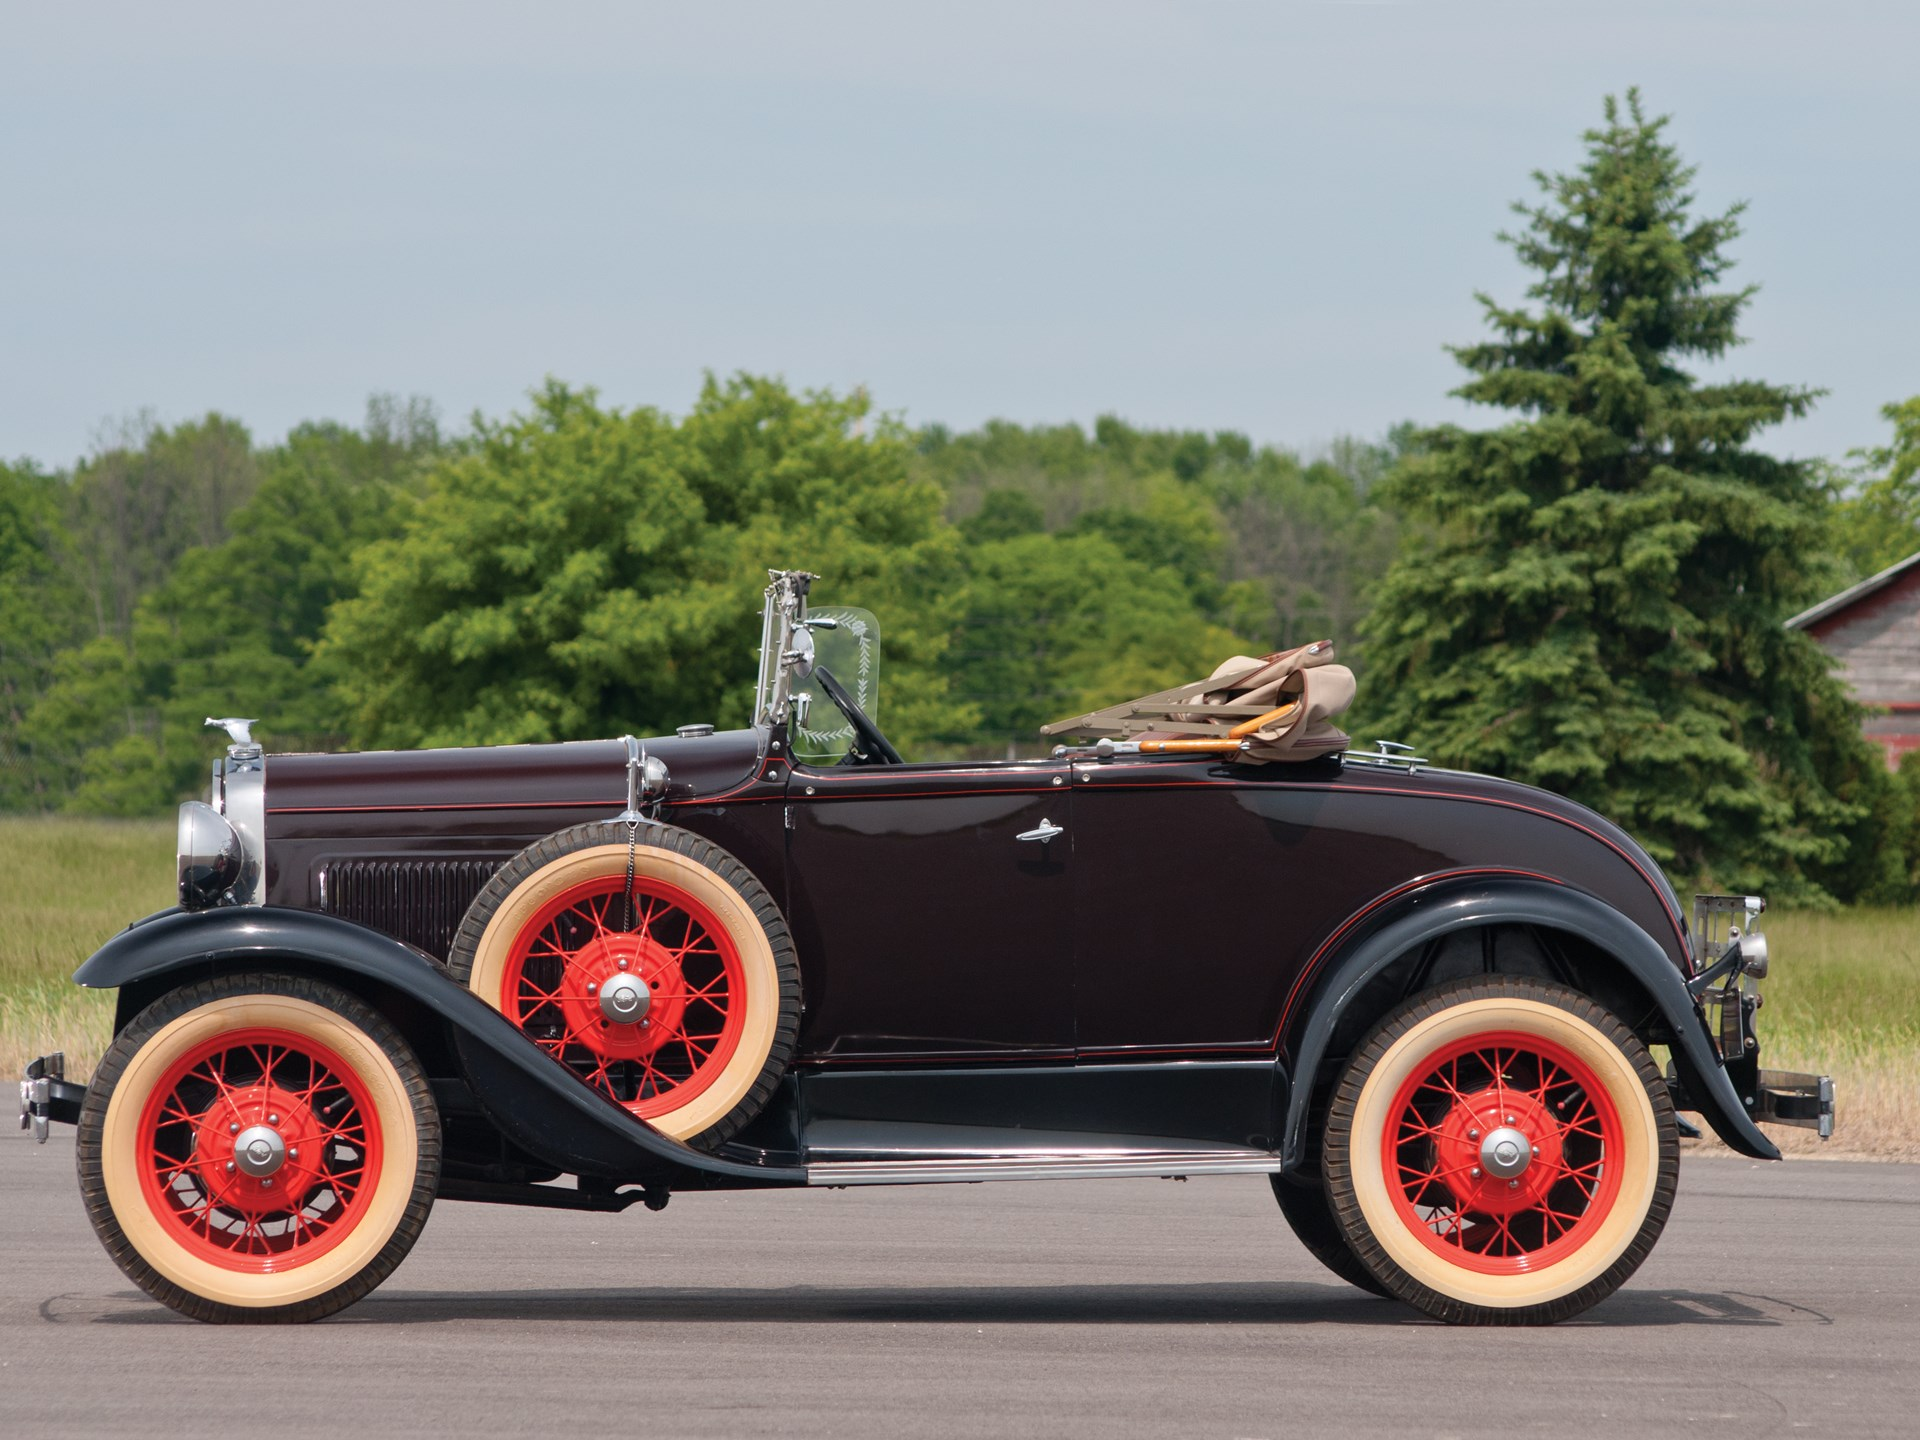 Rm Sothebys 1930 Ford Model A Roadster St Johns Formerly Chevy Sedan Spare Tire Mount